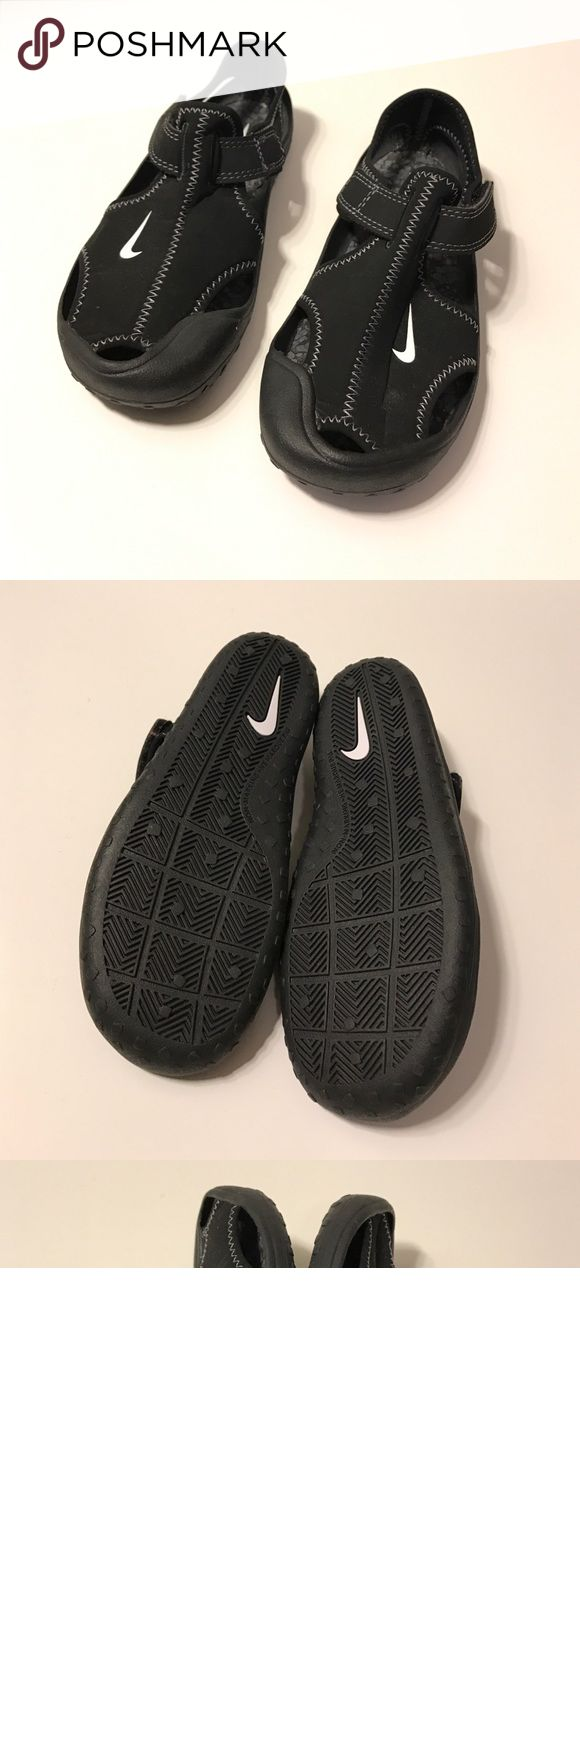 Boys Nike Water Shoes Boys Nike Crocs Style Water Shoes w Velcro Closure. Never worn, no tags Nike Shoes Water Shoes